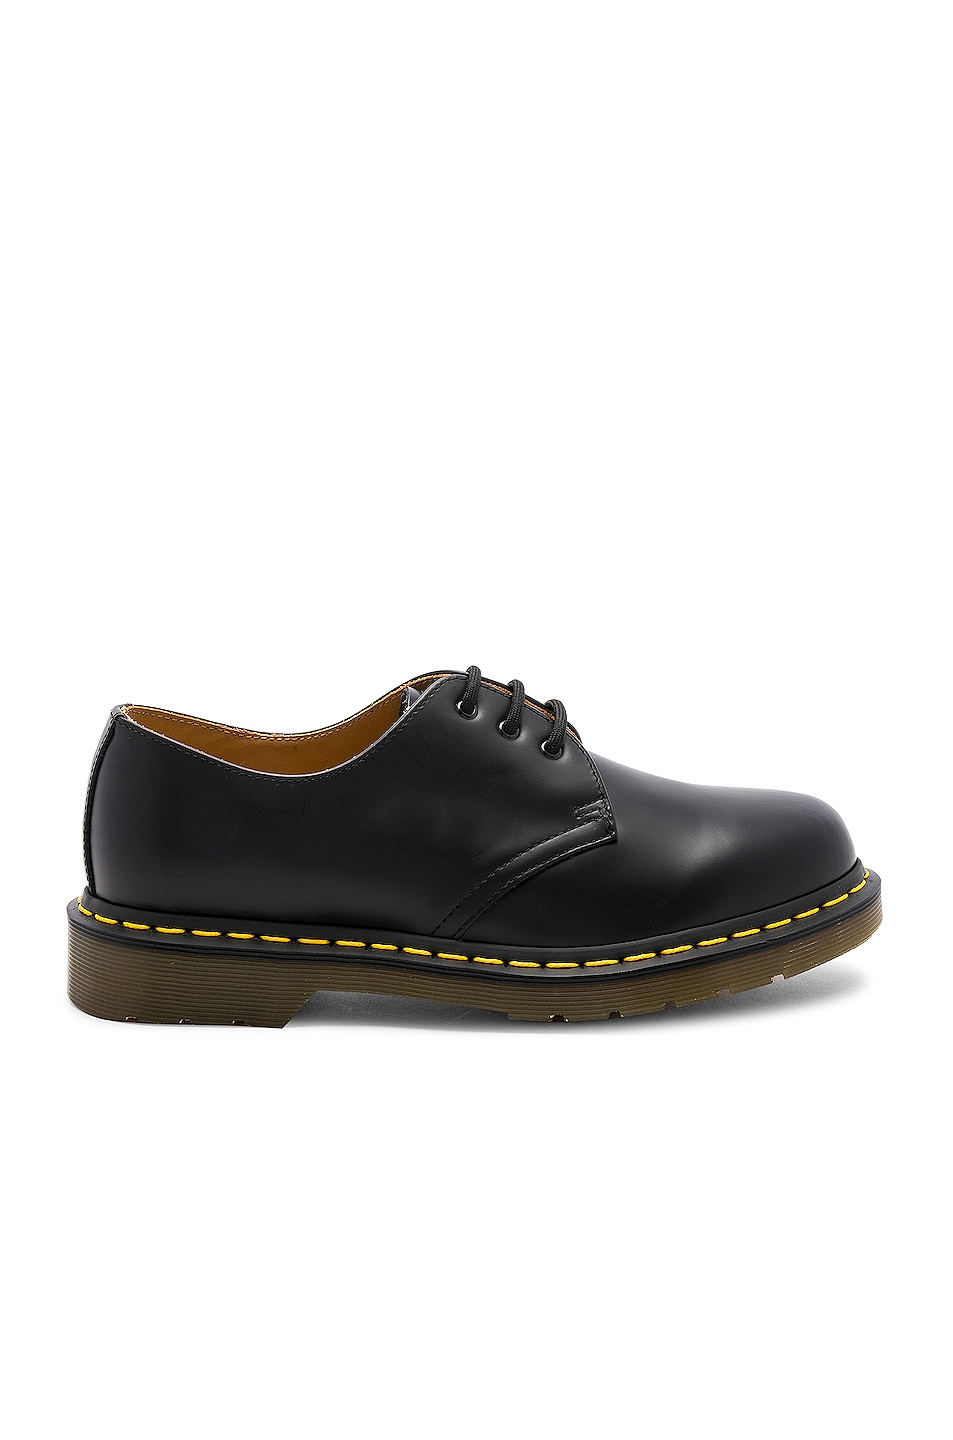 Image 1 of Dr. Martens 1461 3 Eye Gibson in Black